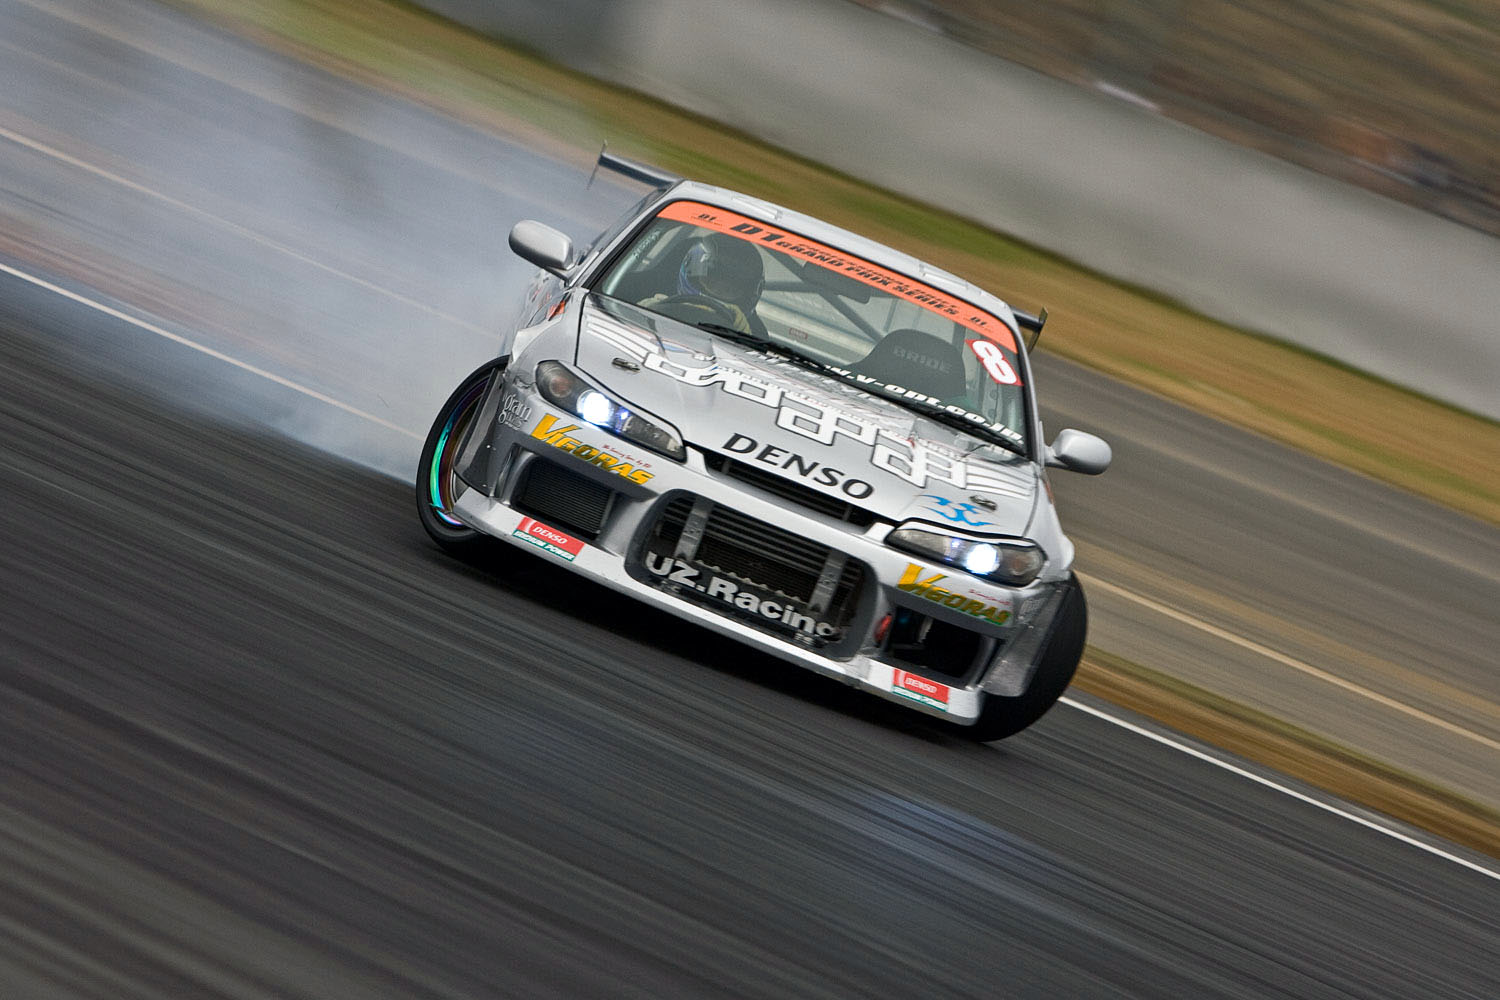 S14 during D1GP at Fuji Speedway in Shizuoka Prefecture, Japan.